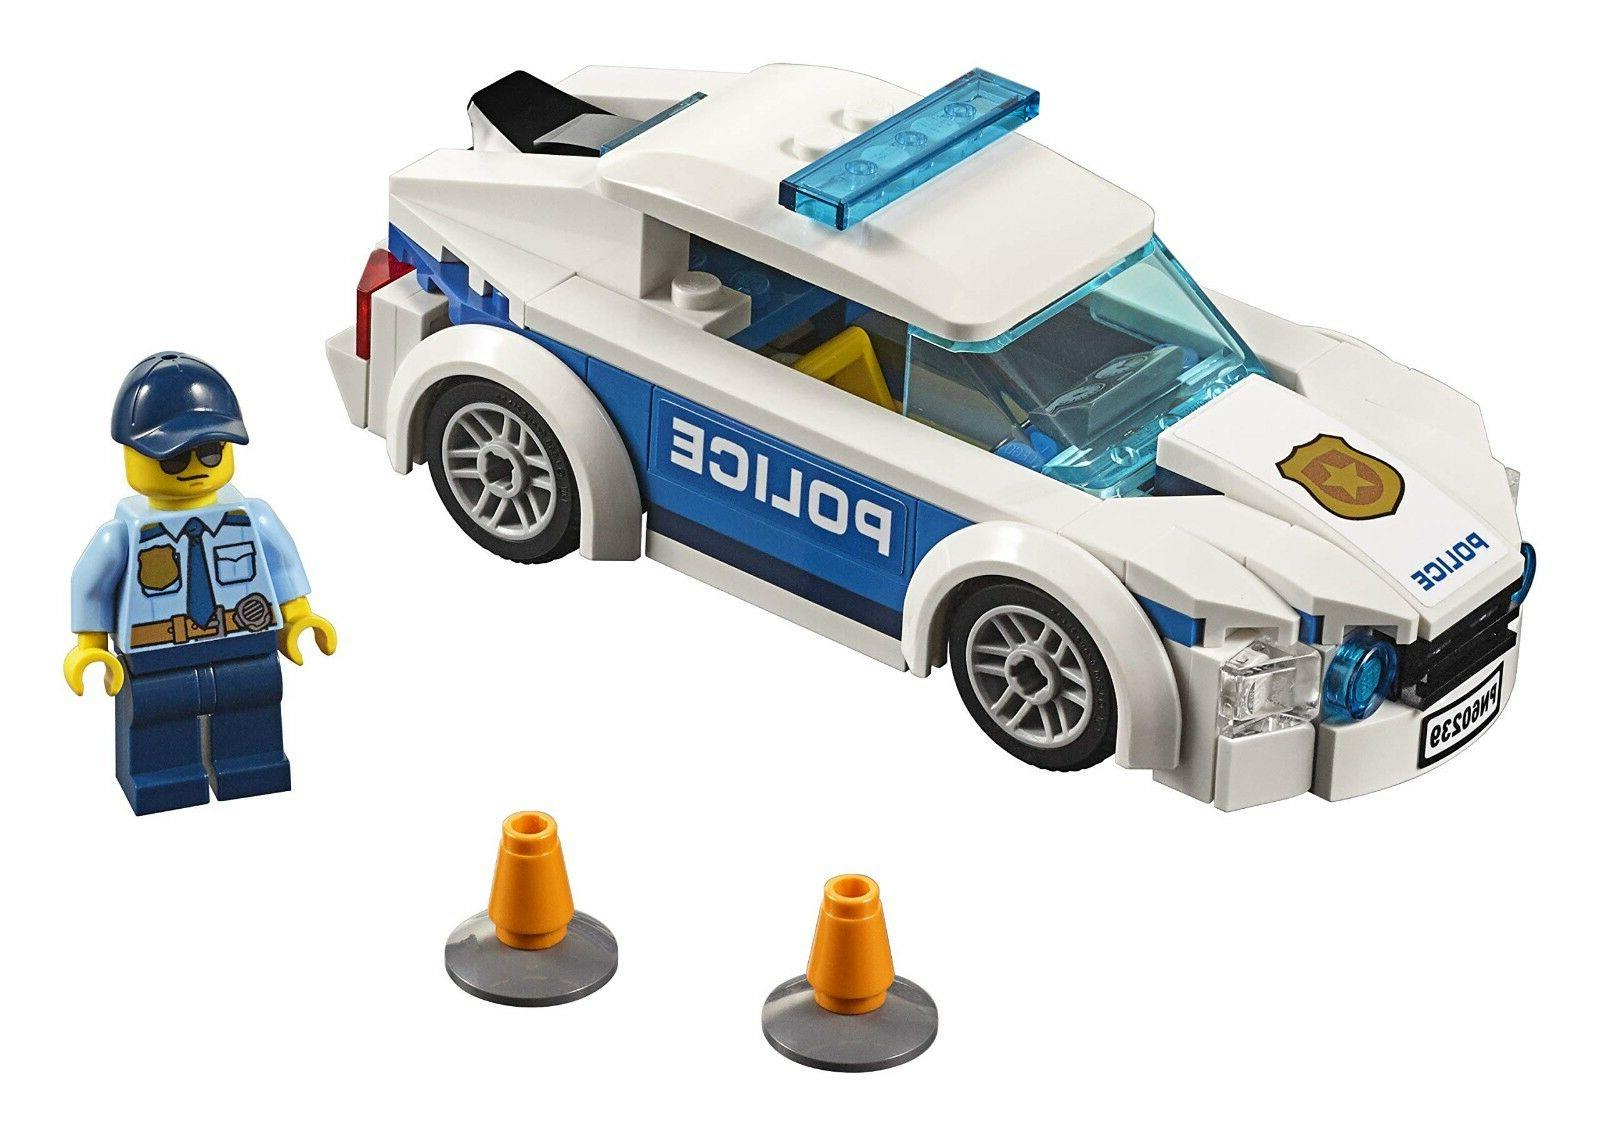 LEGO City Patrol Car Toy